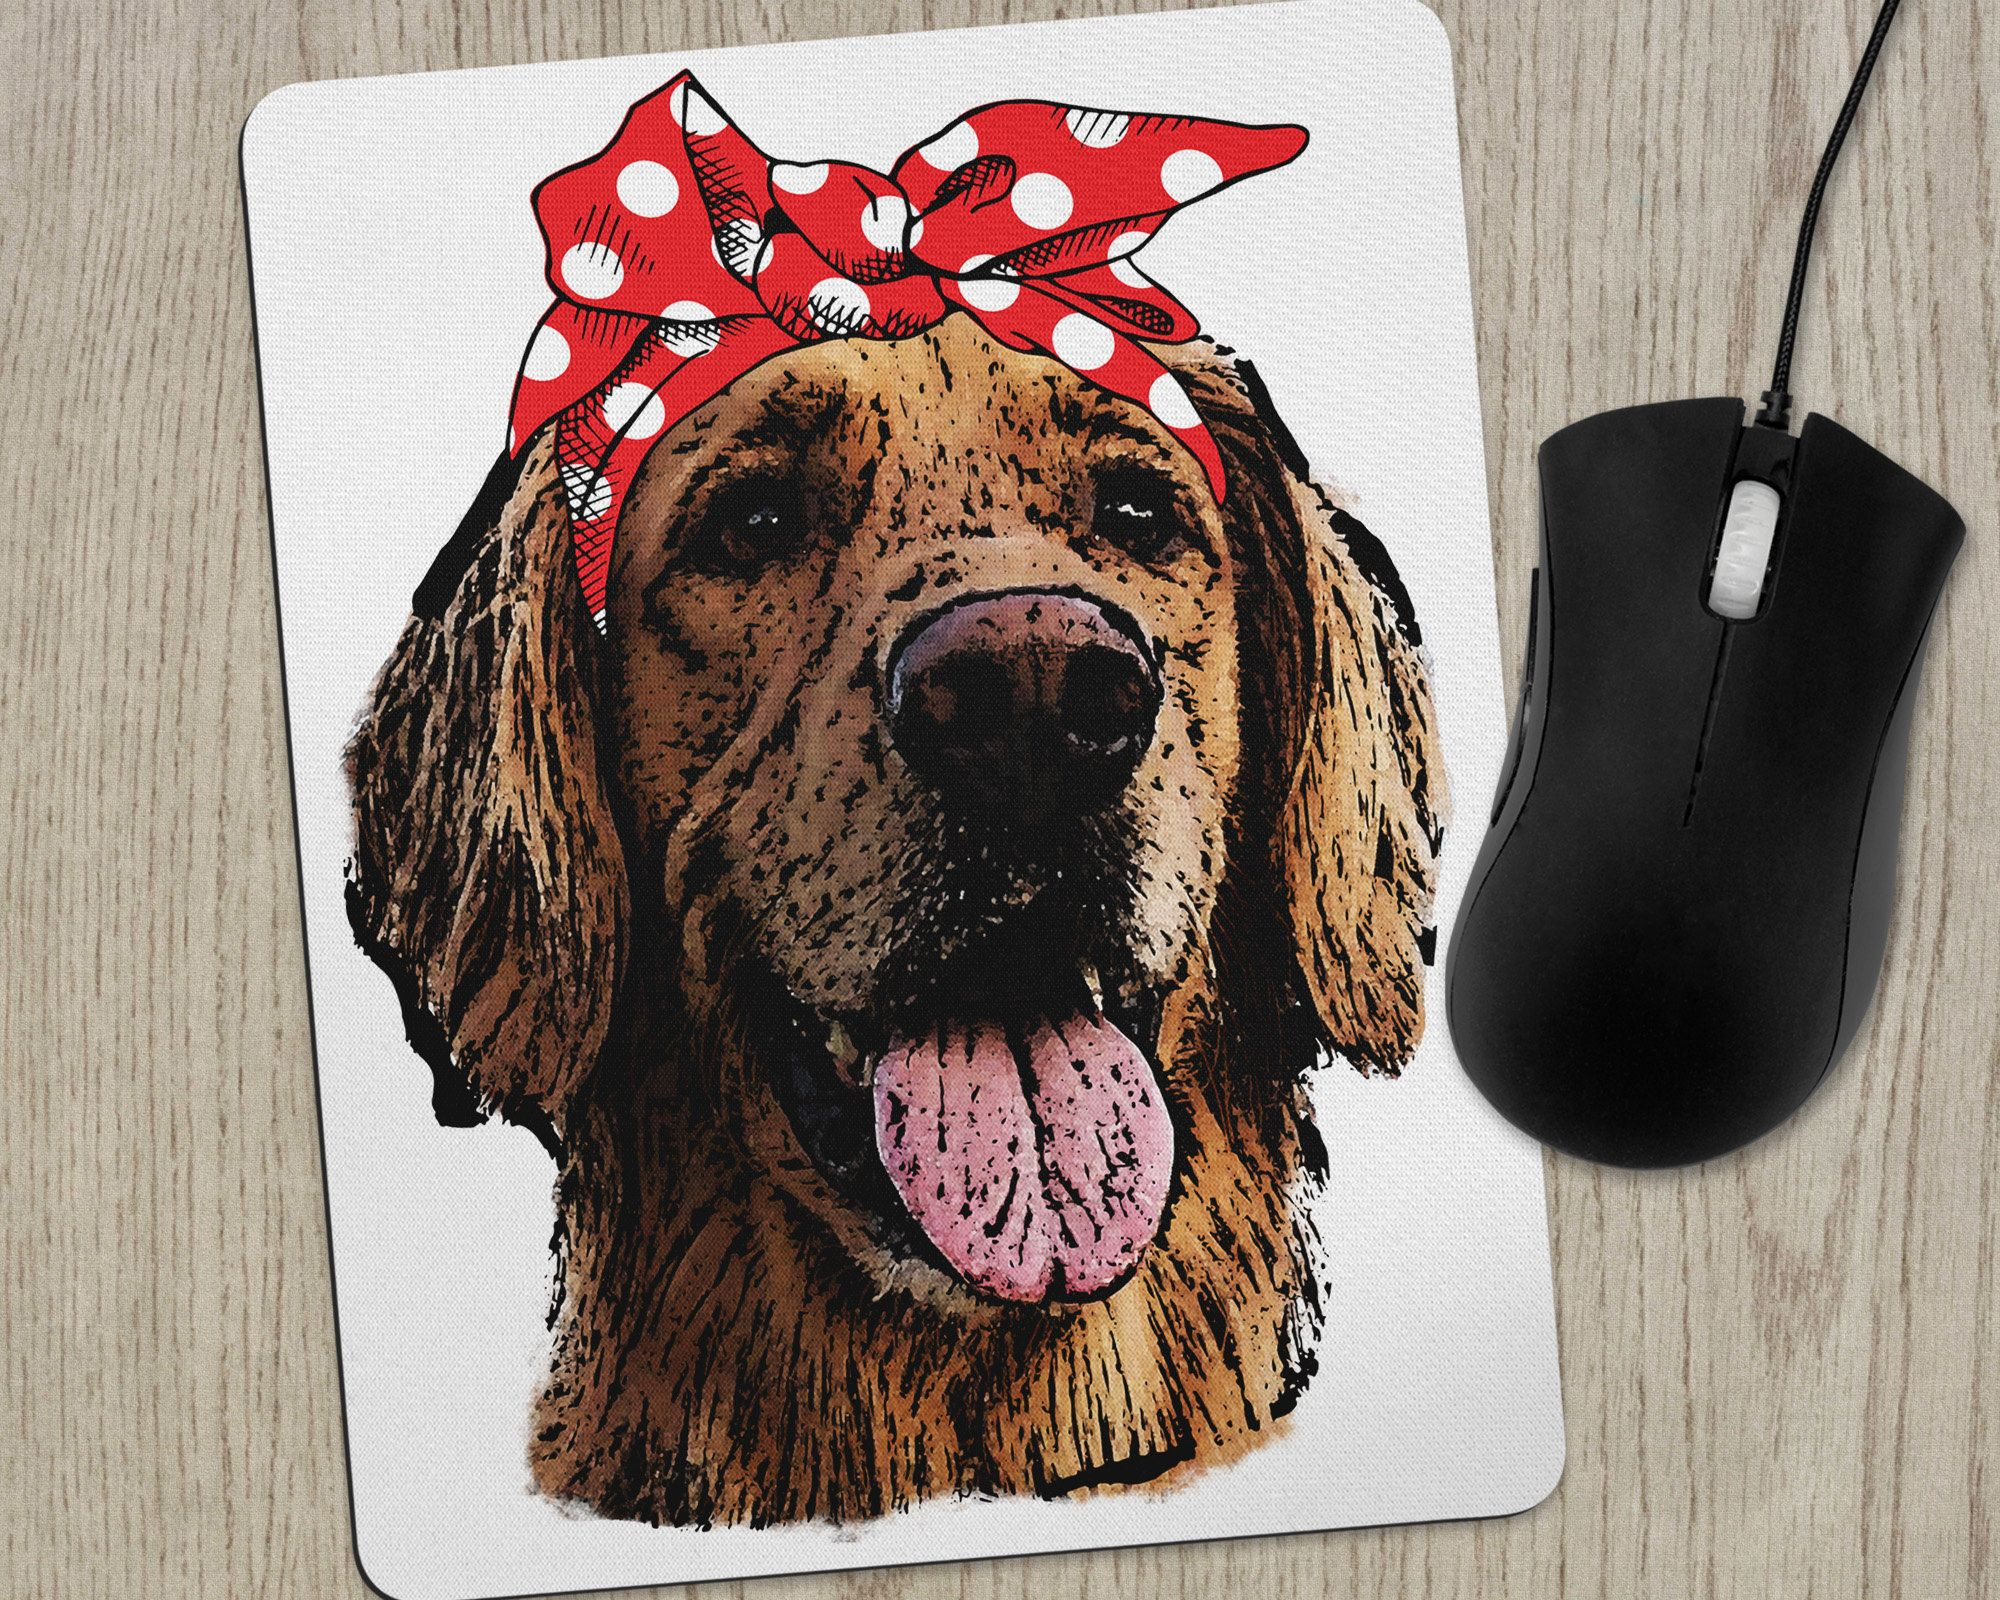 Golden Retriever Gifts Gifts For Dog Lovers Dog Office Etsy Dog Gifts Golden Retriever Gifts Dog Lover Gifts